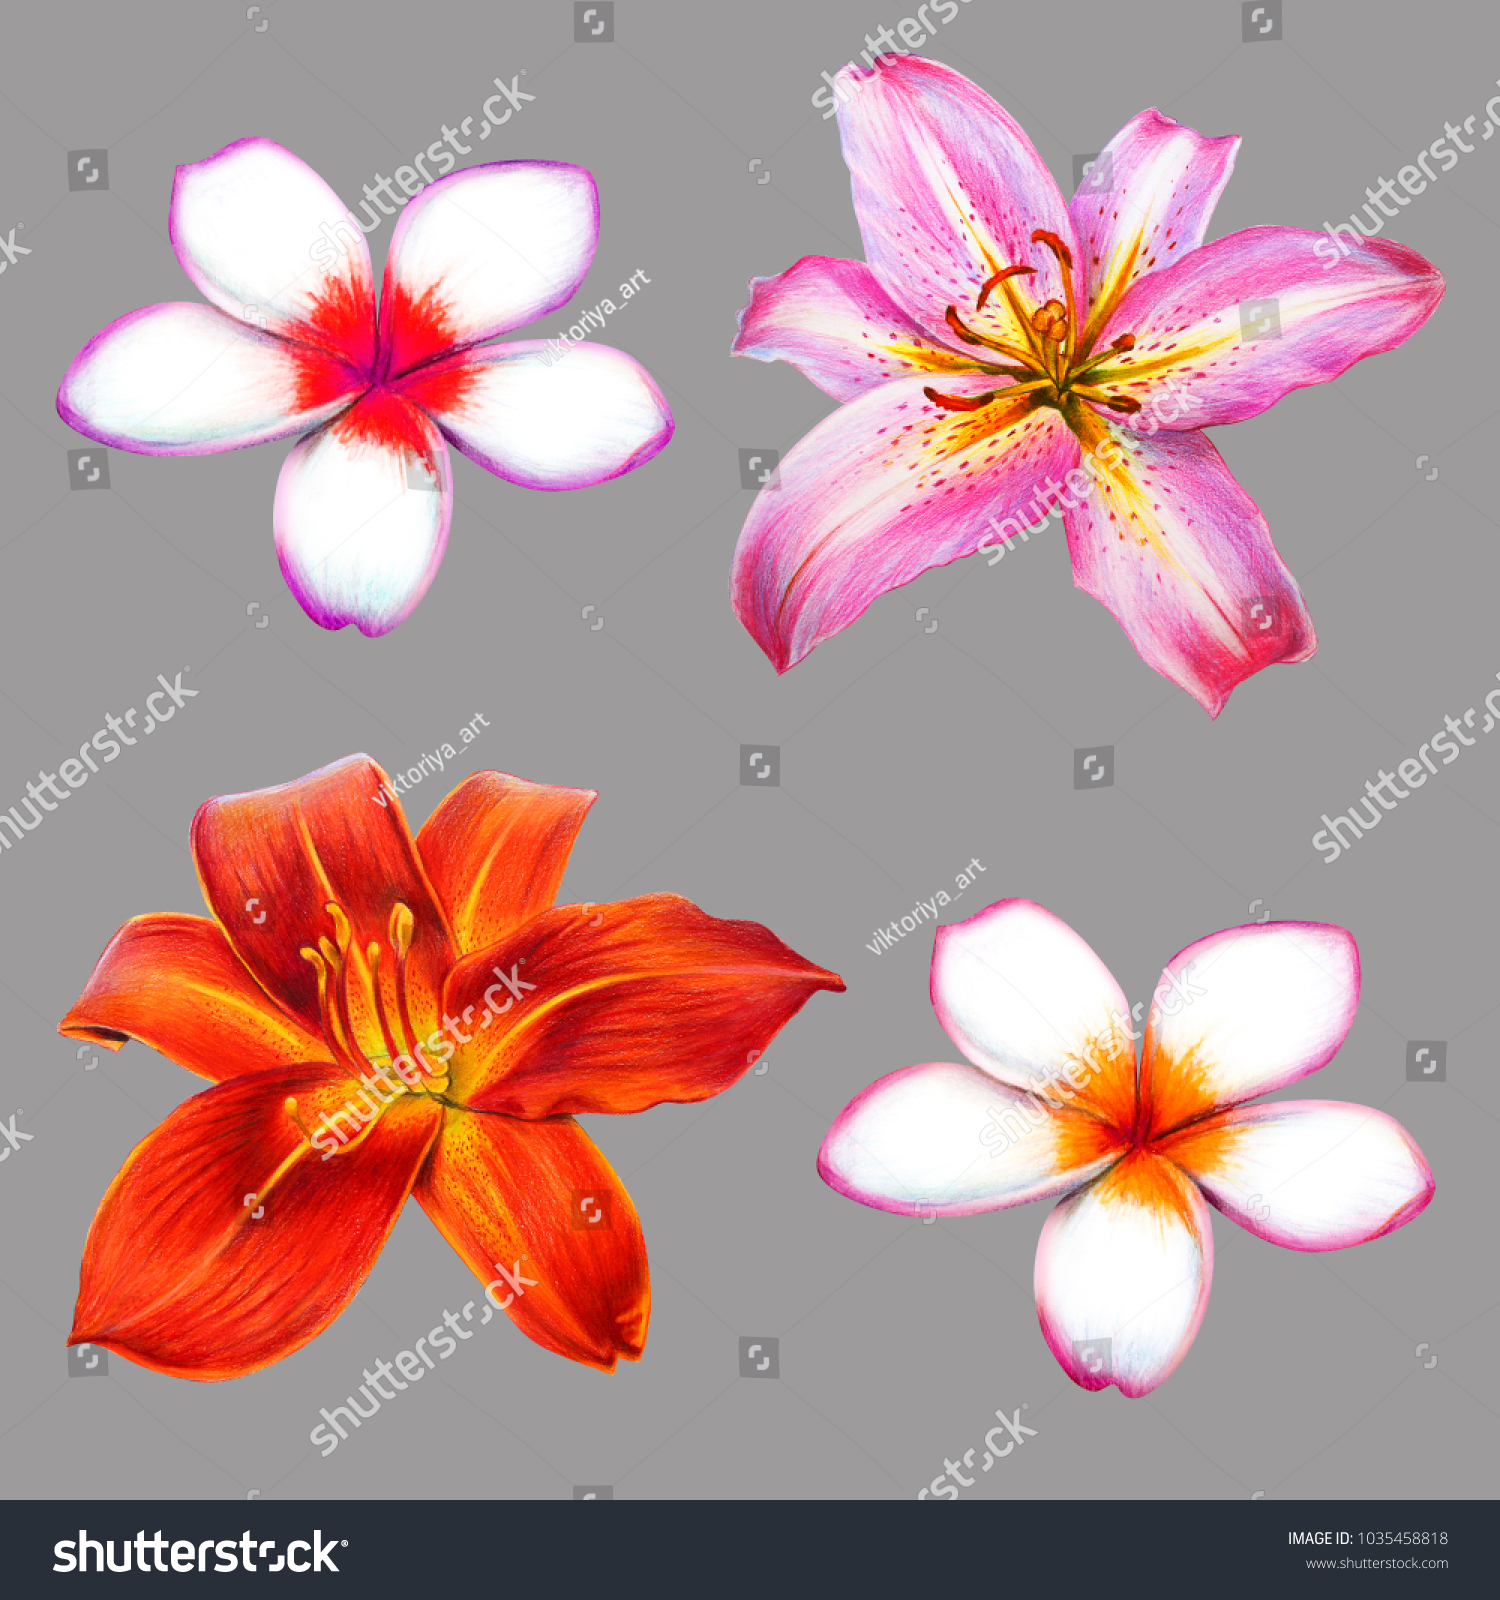 Royalty Free Stock Illustration Of Red Pink Lily Small White Flowers